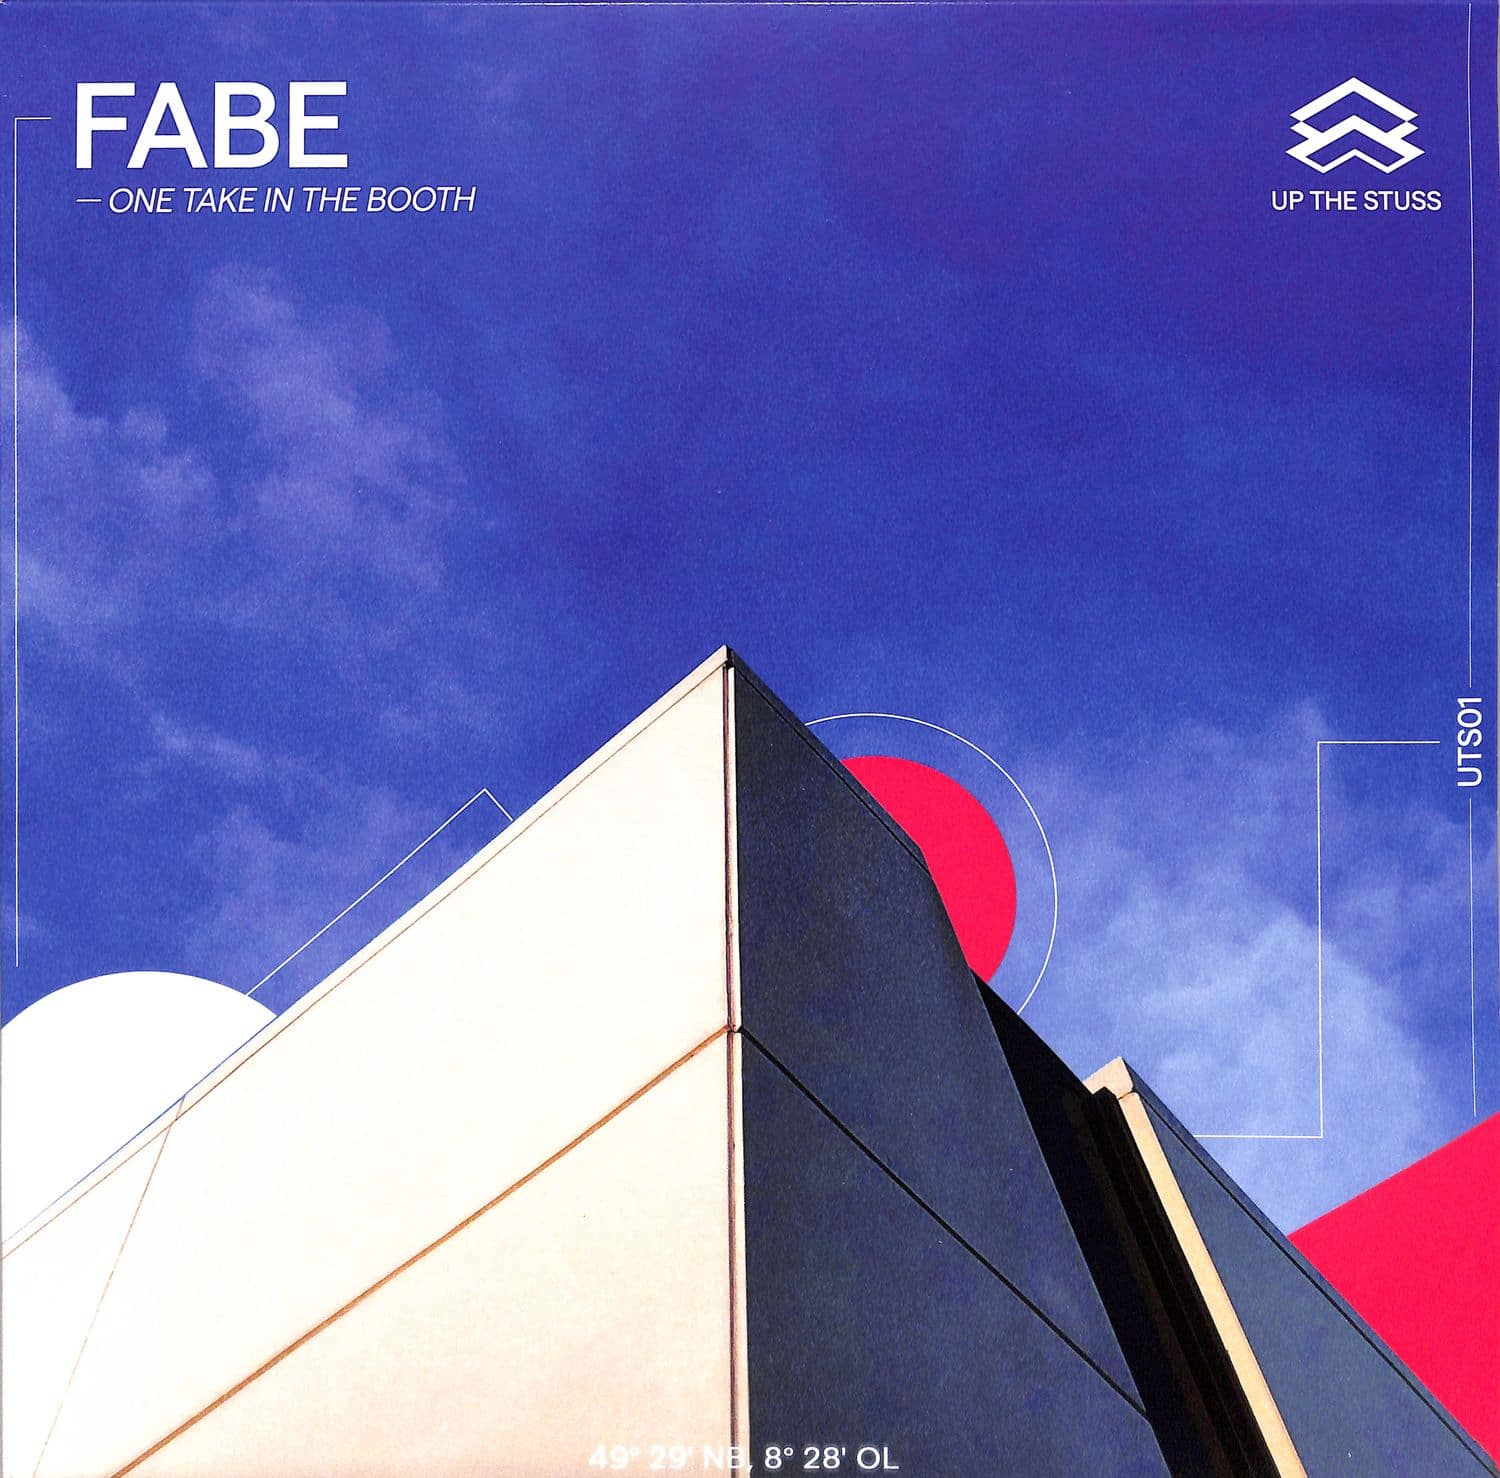 Fabe - ONE TAKE IN THE BOOTH